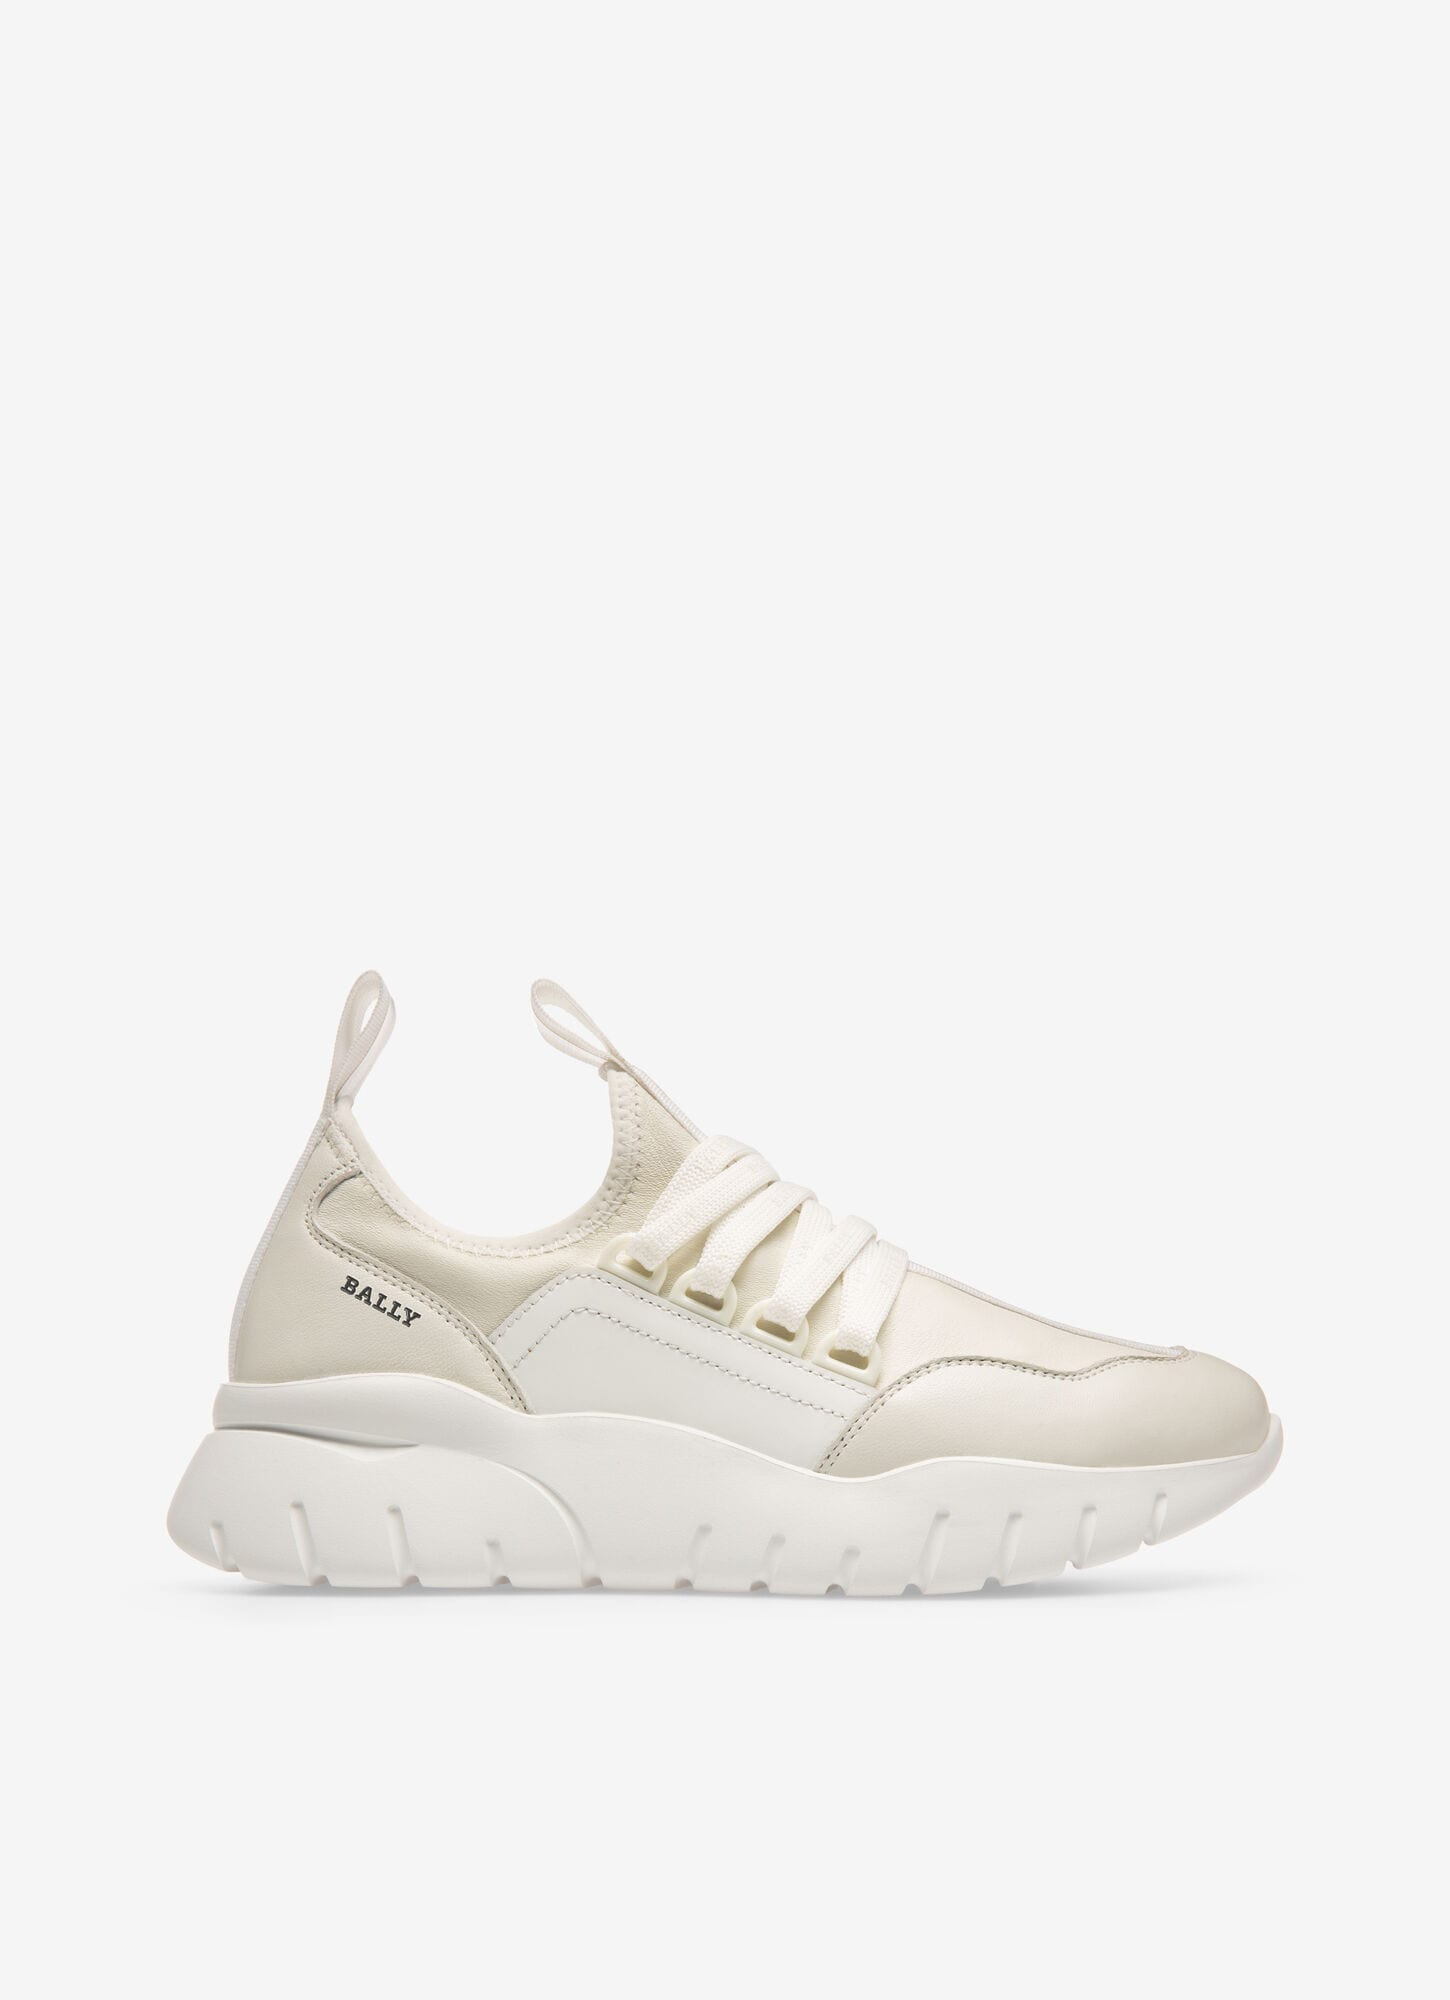 BISE  Womens Sneakers   White Leather